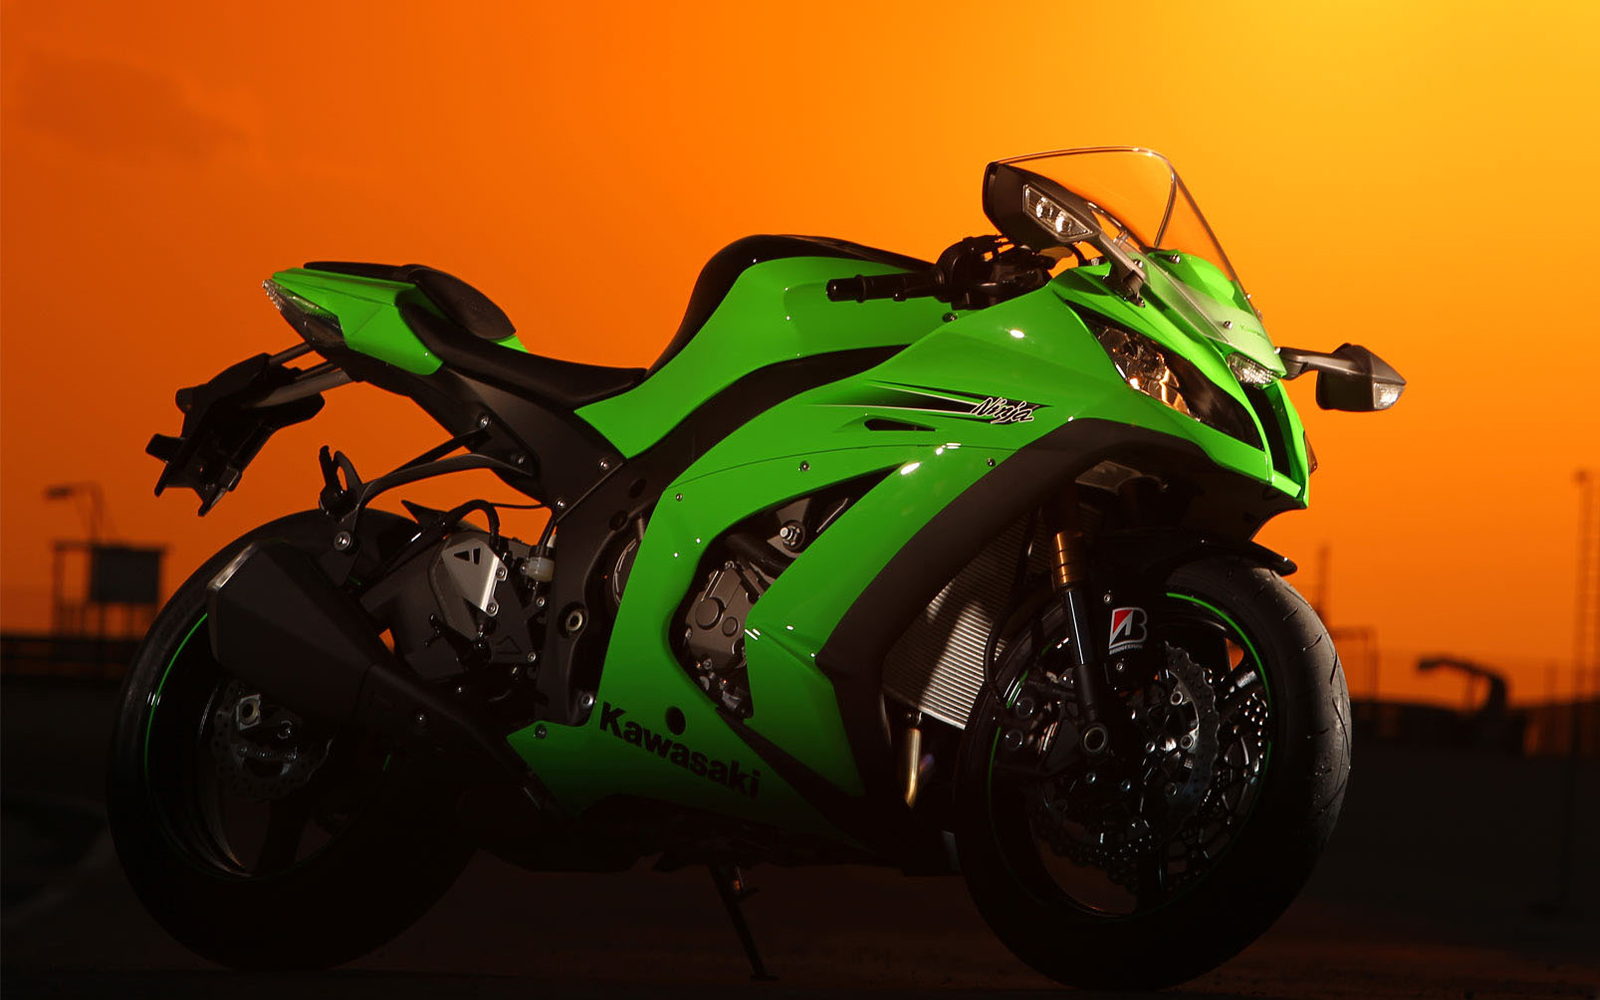 Kawasaki Ninja ZX10R 2009 Wallpapers